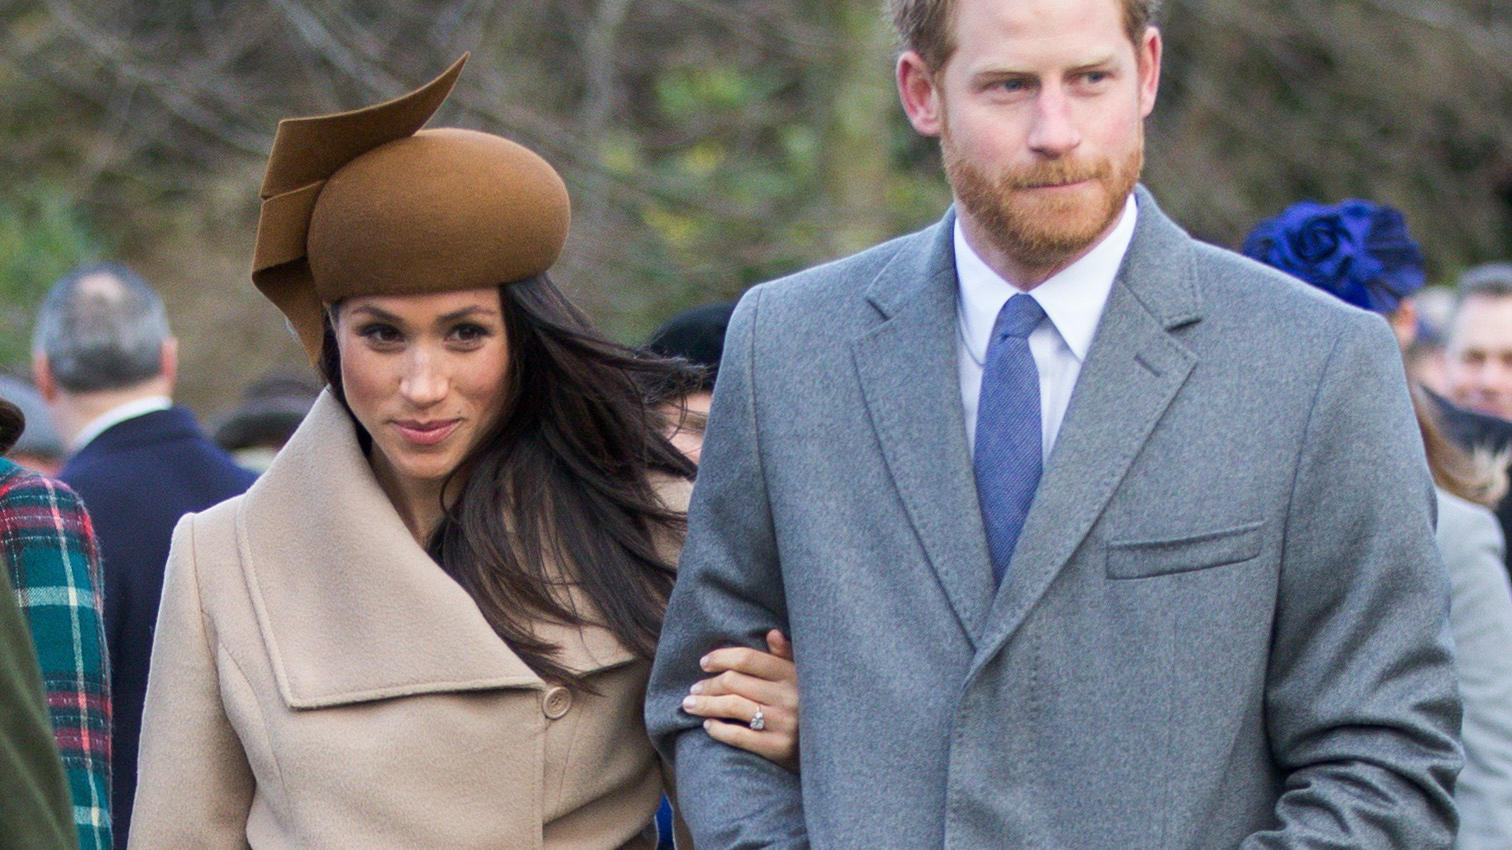 UK PAPERS/WEB OUTThe Duke and Duchess of Cambridge, Meghan Markle and Prince Harry and other members of the Royal Family at the Christmas Day morning church service at St Mary Magdalene Church in Sandringham, Norfolk, United Kingdom.